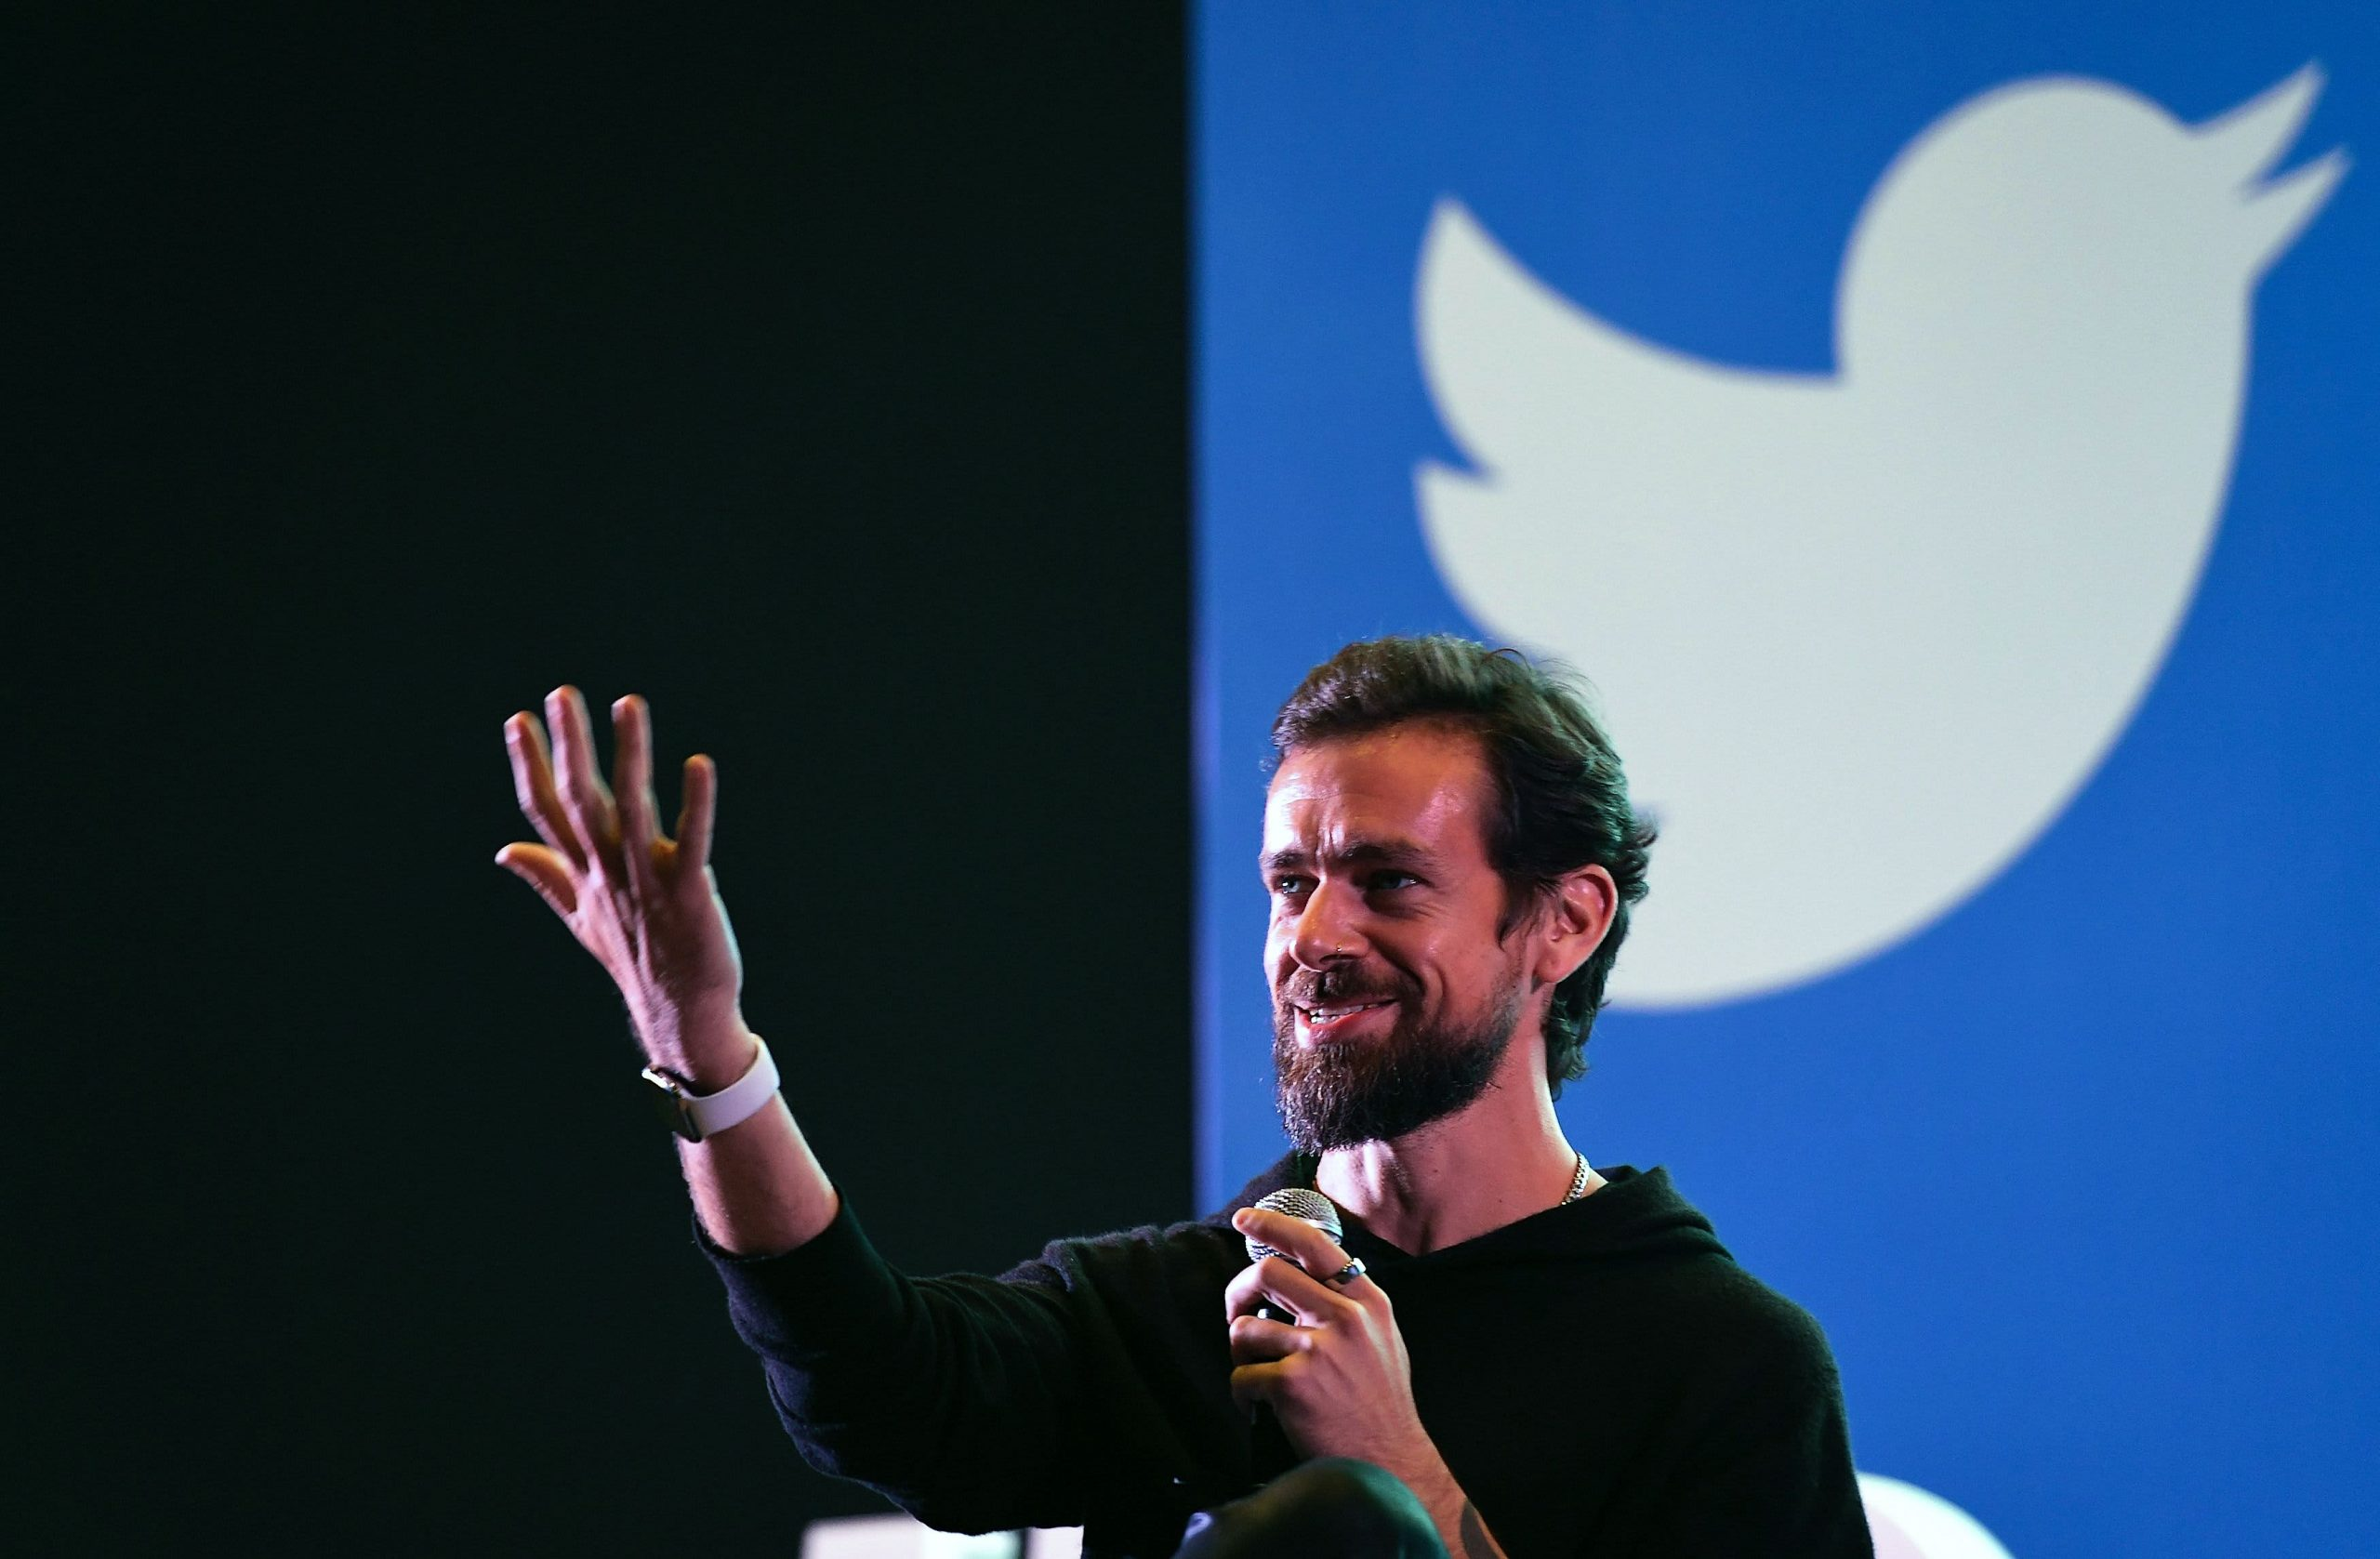 Jack Dorsey is offering to sell the first tweet as an NFT